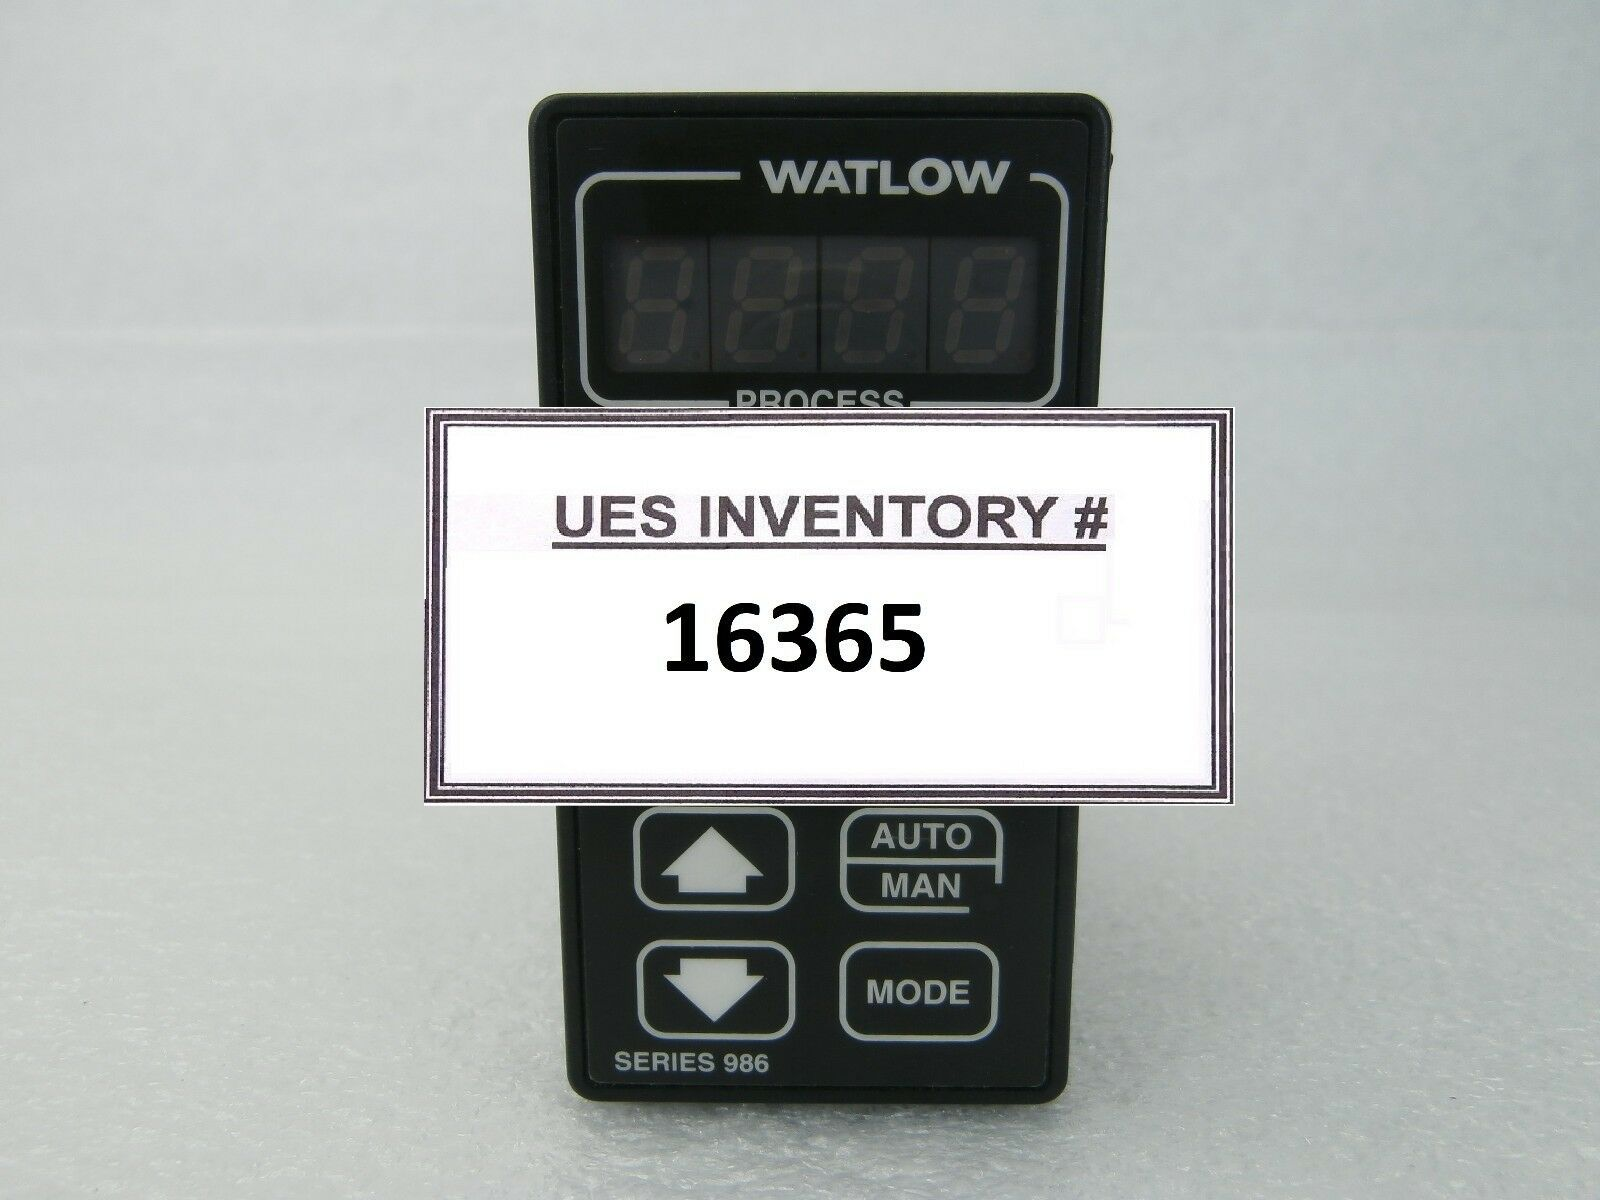 Watlow 986A-20FD-MARG Microprocessor-Based Temperature Process Controller Used